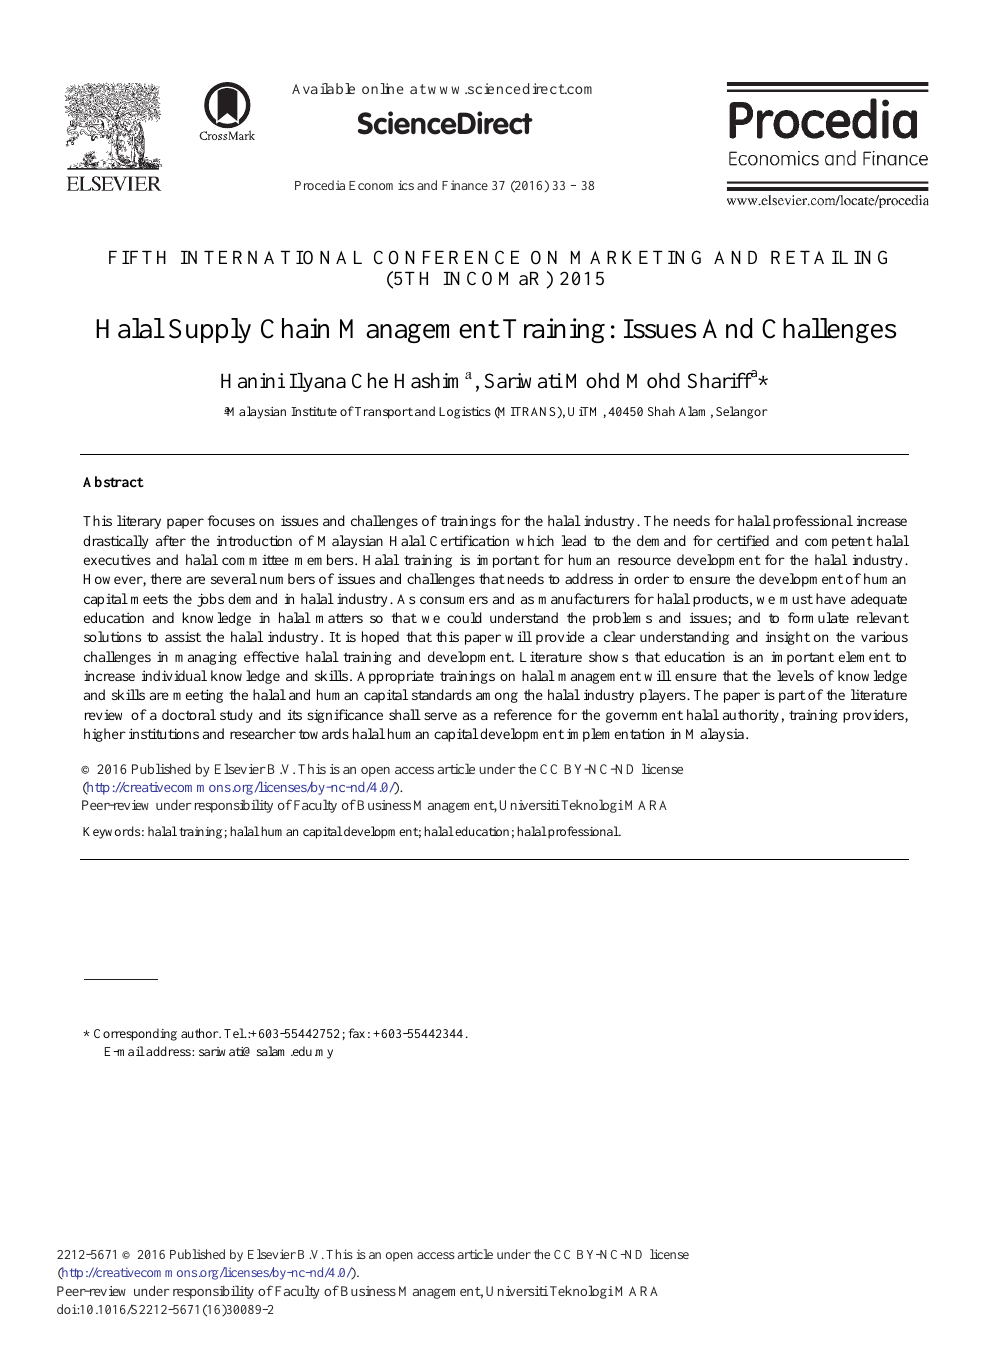 Halal Supply Chain Management Training: Issues and